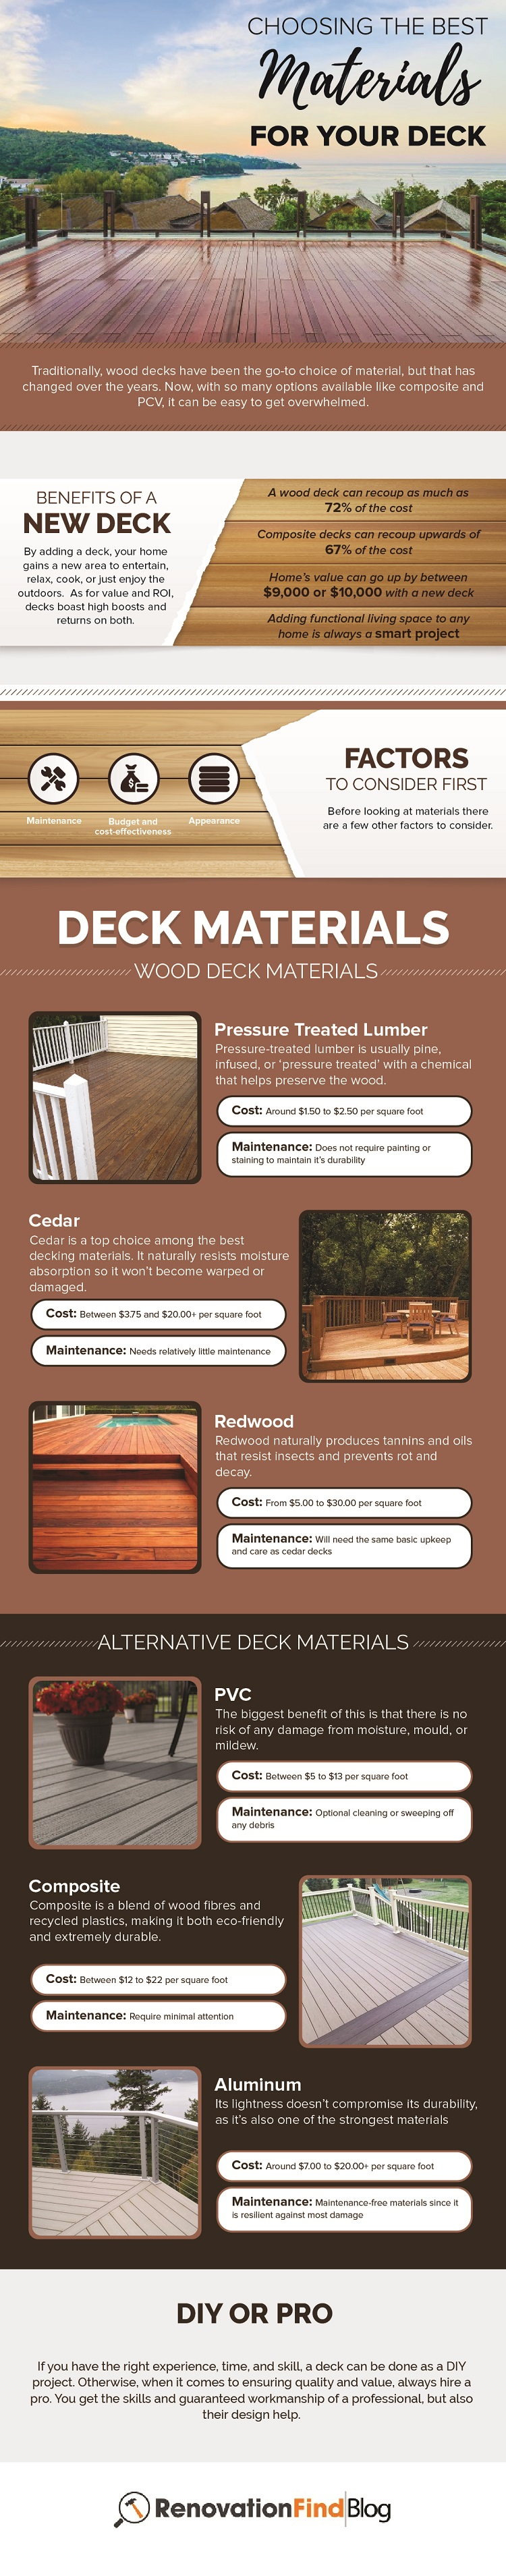 Choosing The Best Materials For Your Deck #infographic